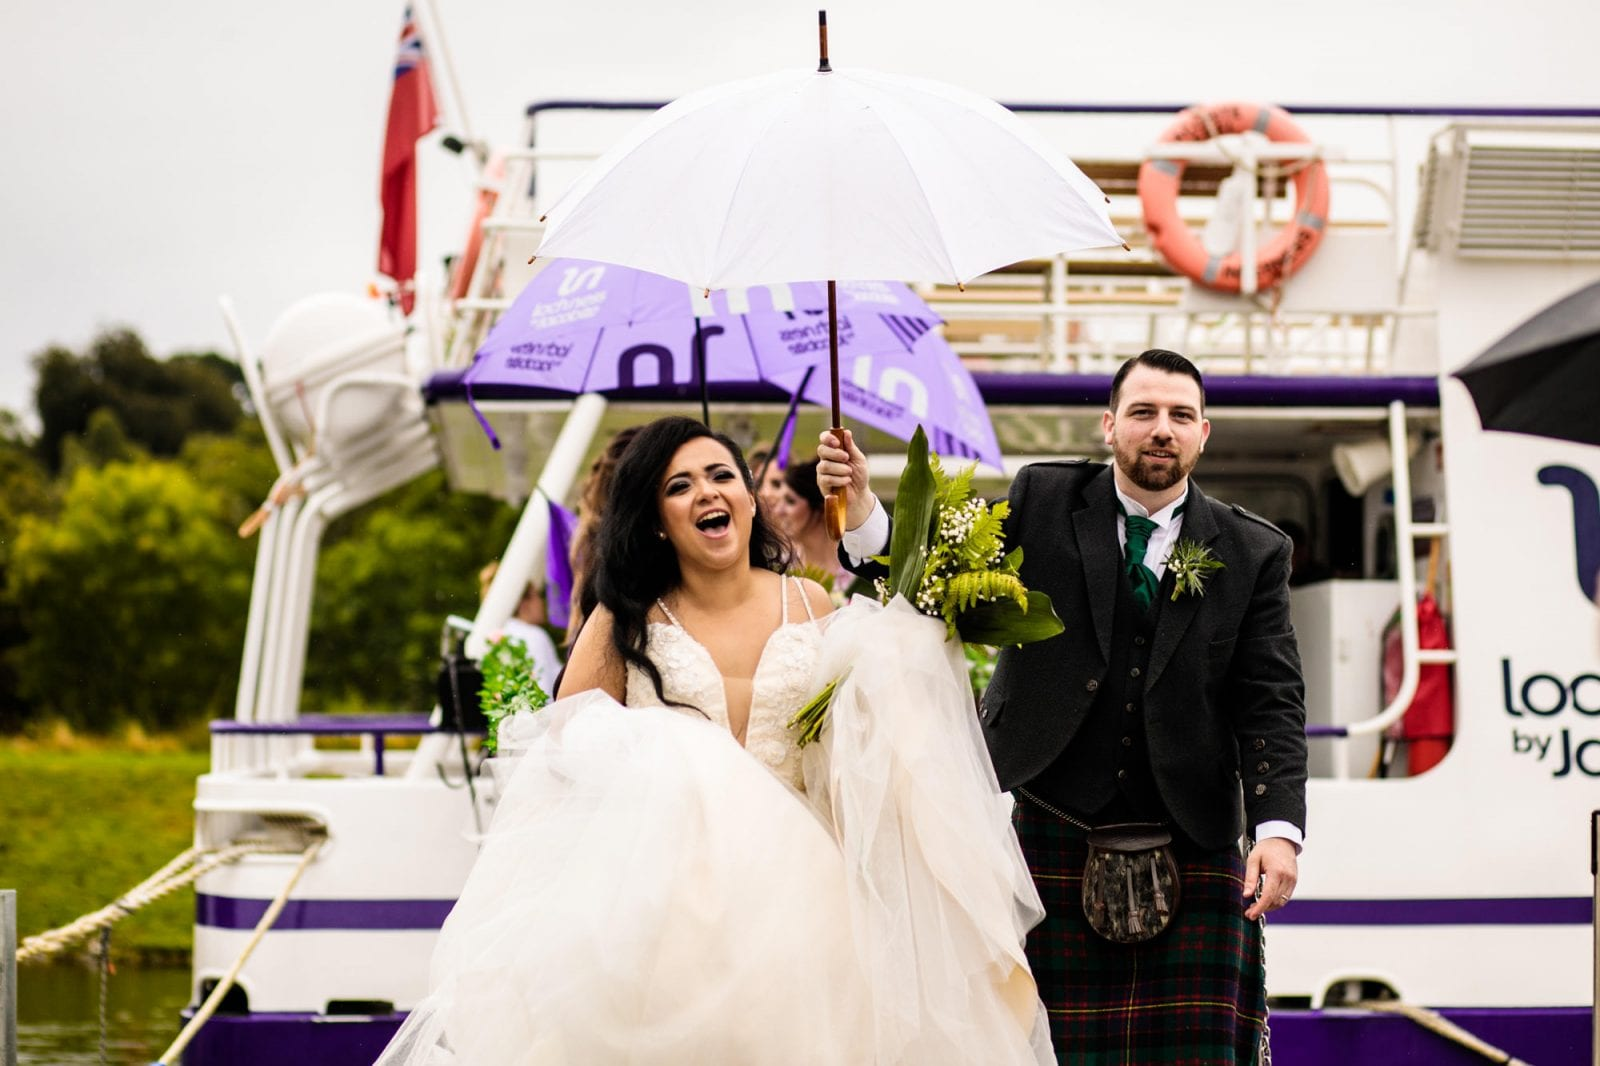 Bride and groom walking off boat on Loch Ness